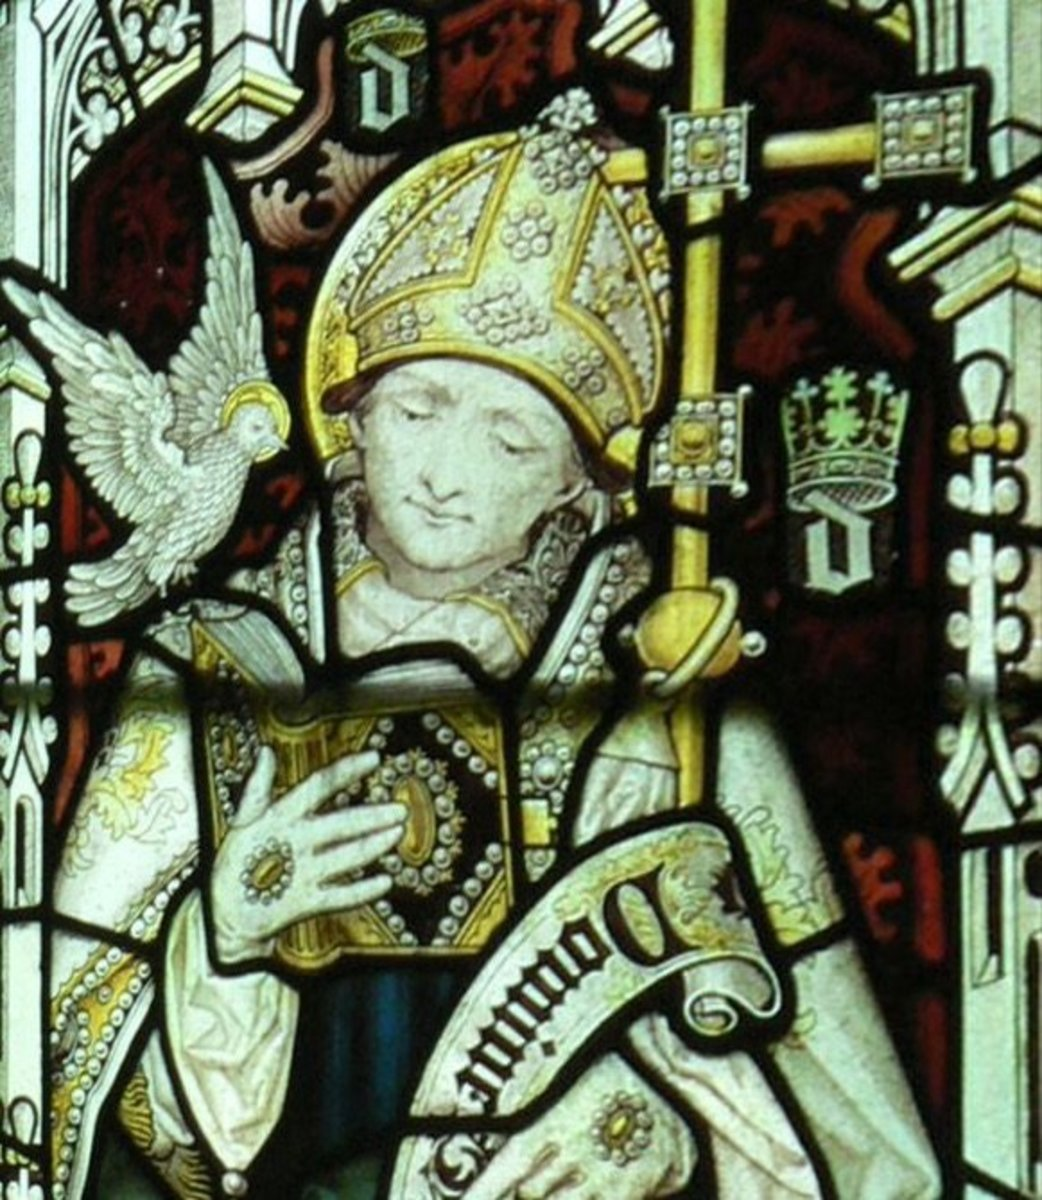 St David - The Patron Saint of Wales